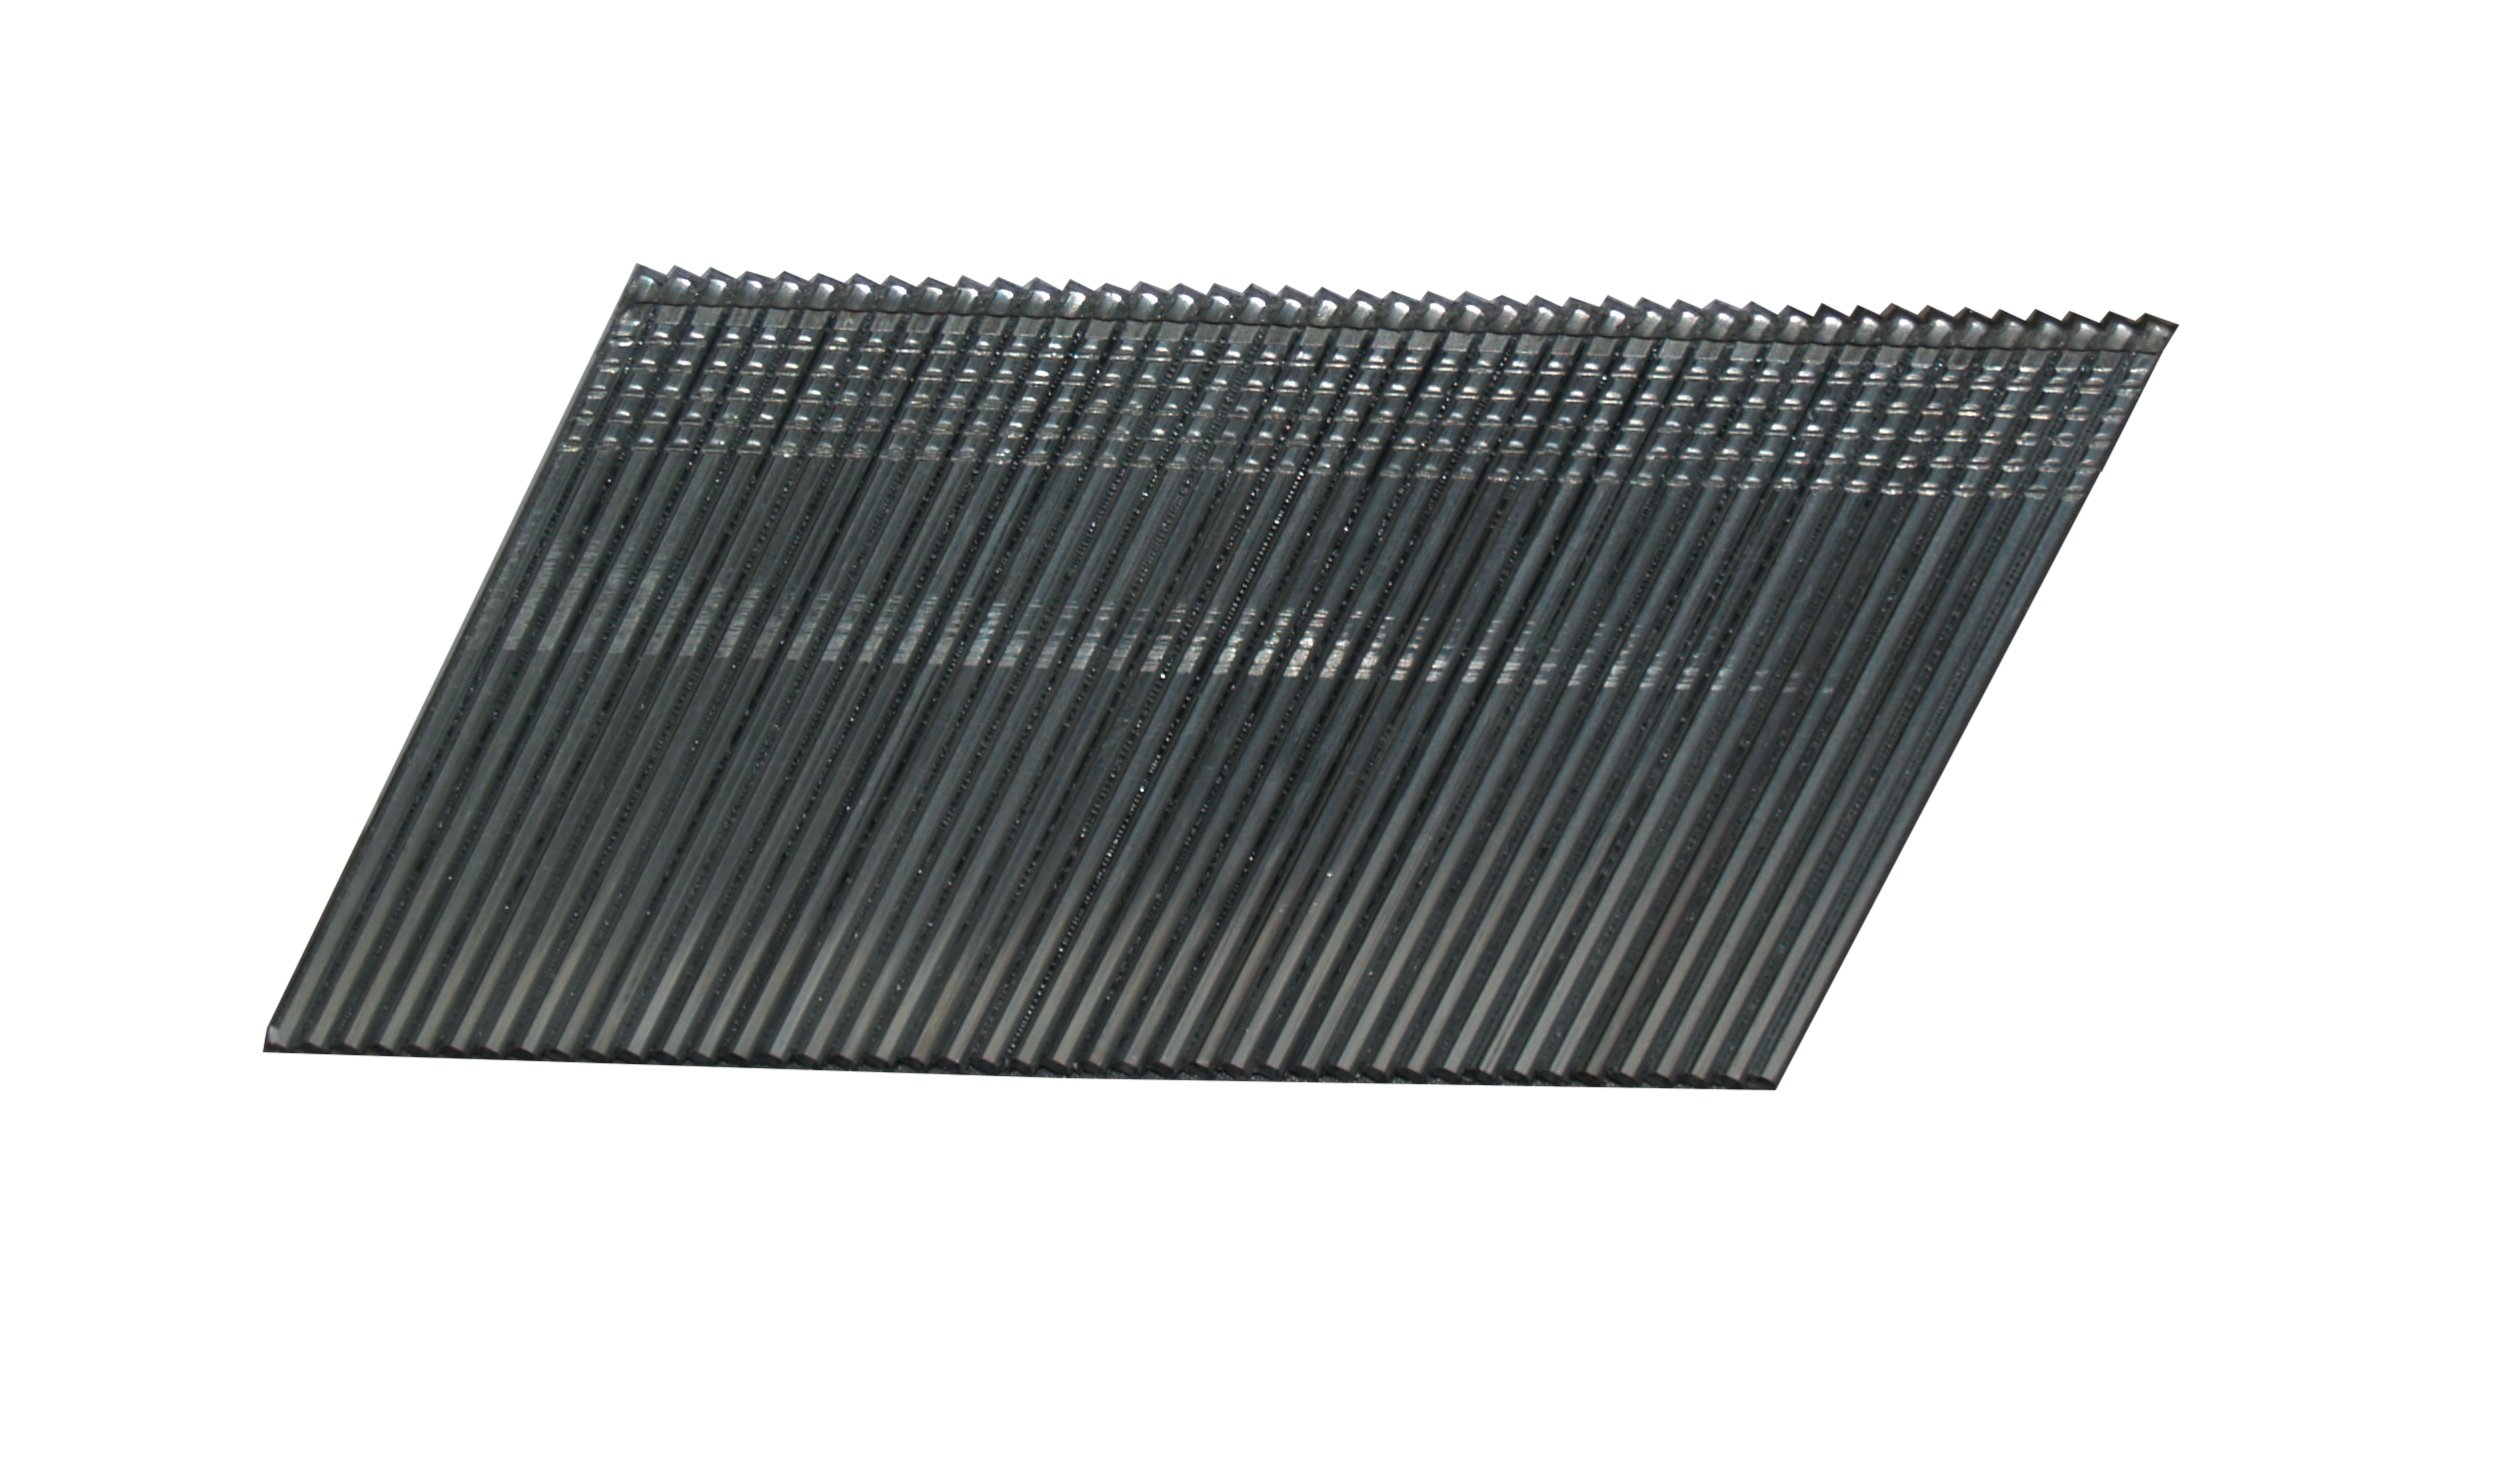 Spot Nails 1520FNG 15-Gauge Angle Galvanized Finish Nails for Bostitch, 3500-Count, 2-1/2-Inch